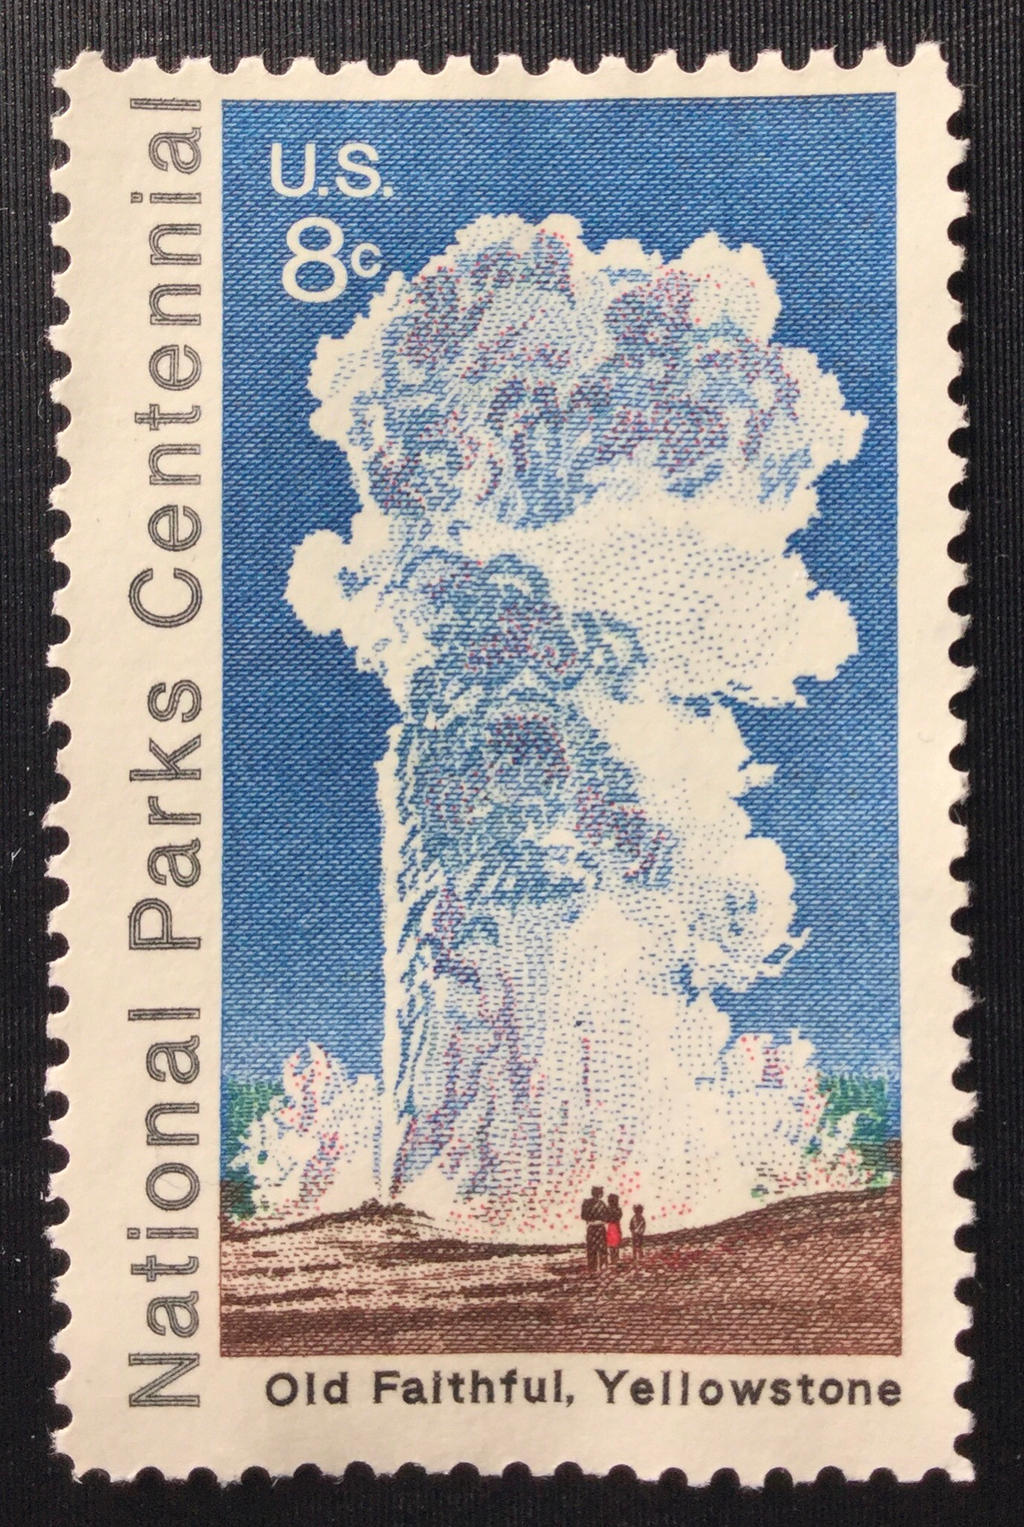 POSTAGE STAMPS -MINT CONDITION 2 U.S YELLOWSTONE NATIONAL PARK OLD FAITHFUL